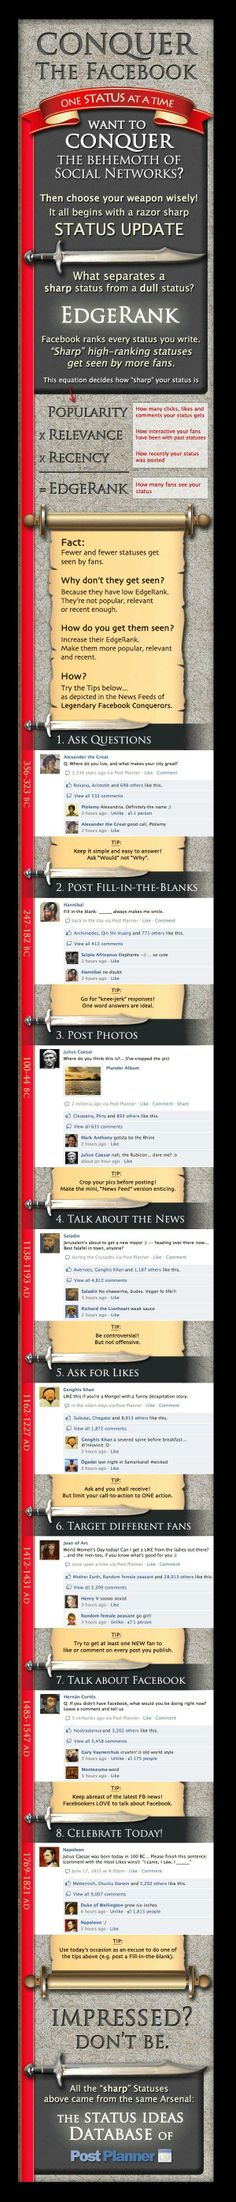 8 tips for improving your Facebook EdgeRank